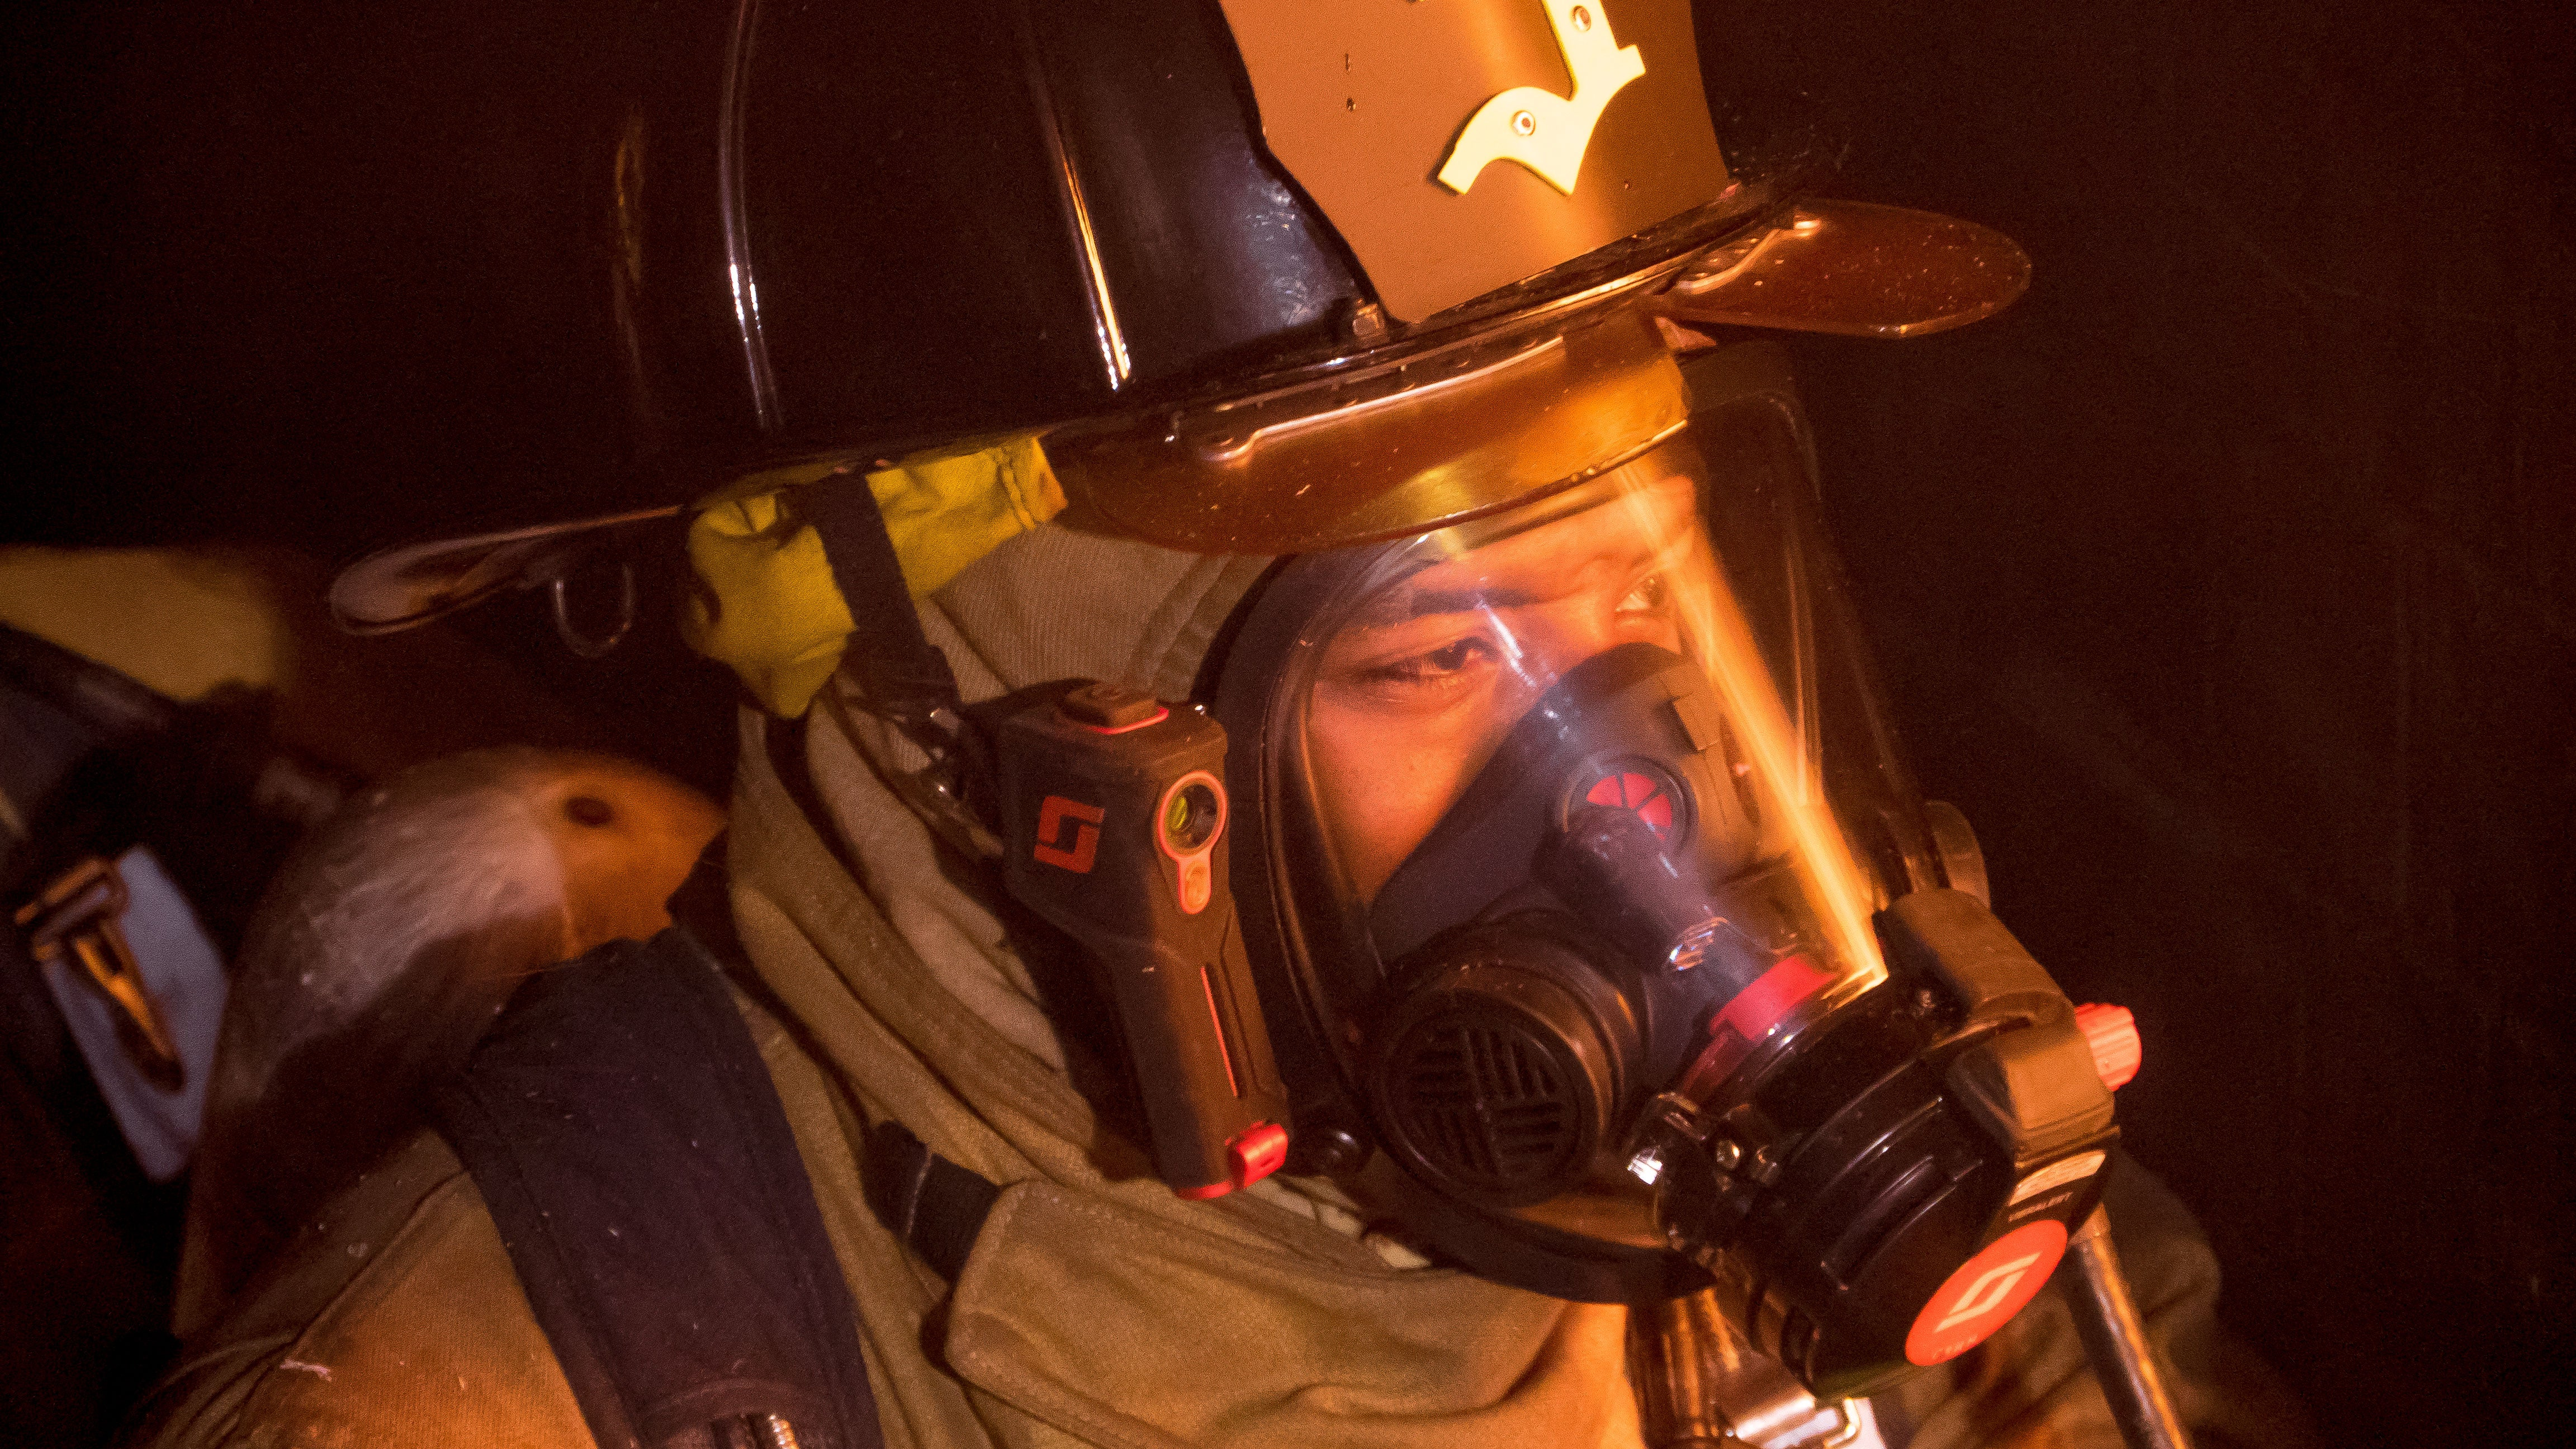 This Thermal Imaging Helmet Gives Firefighters Predator Vision